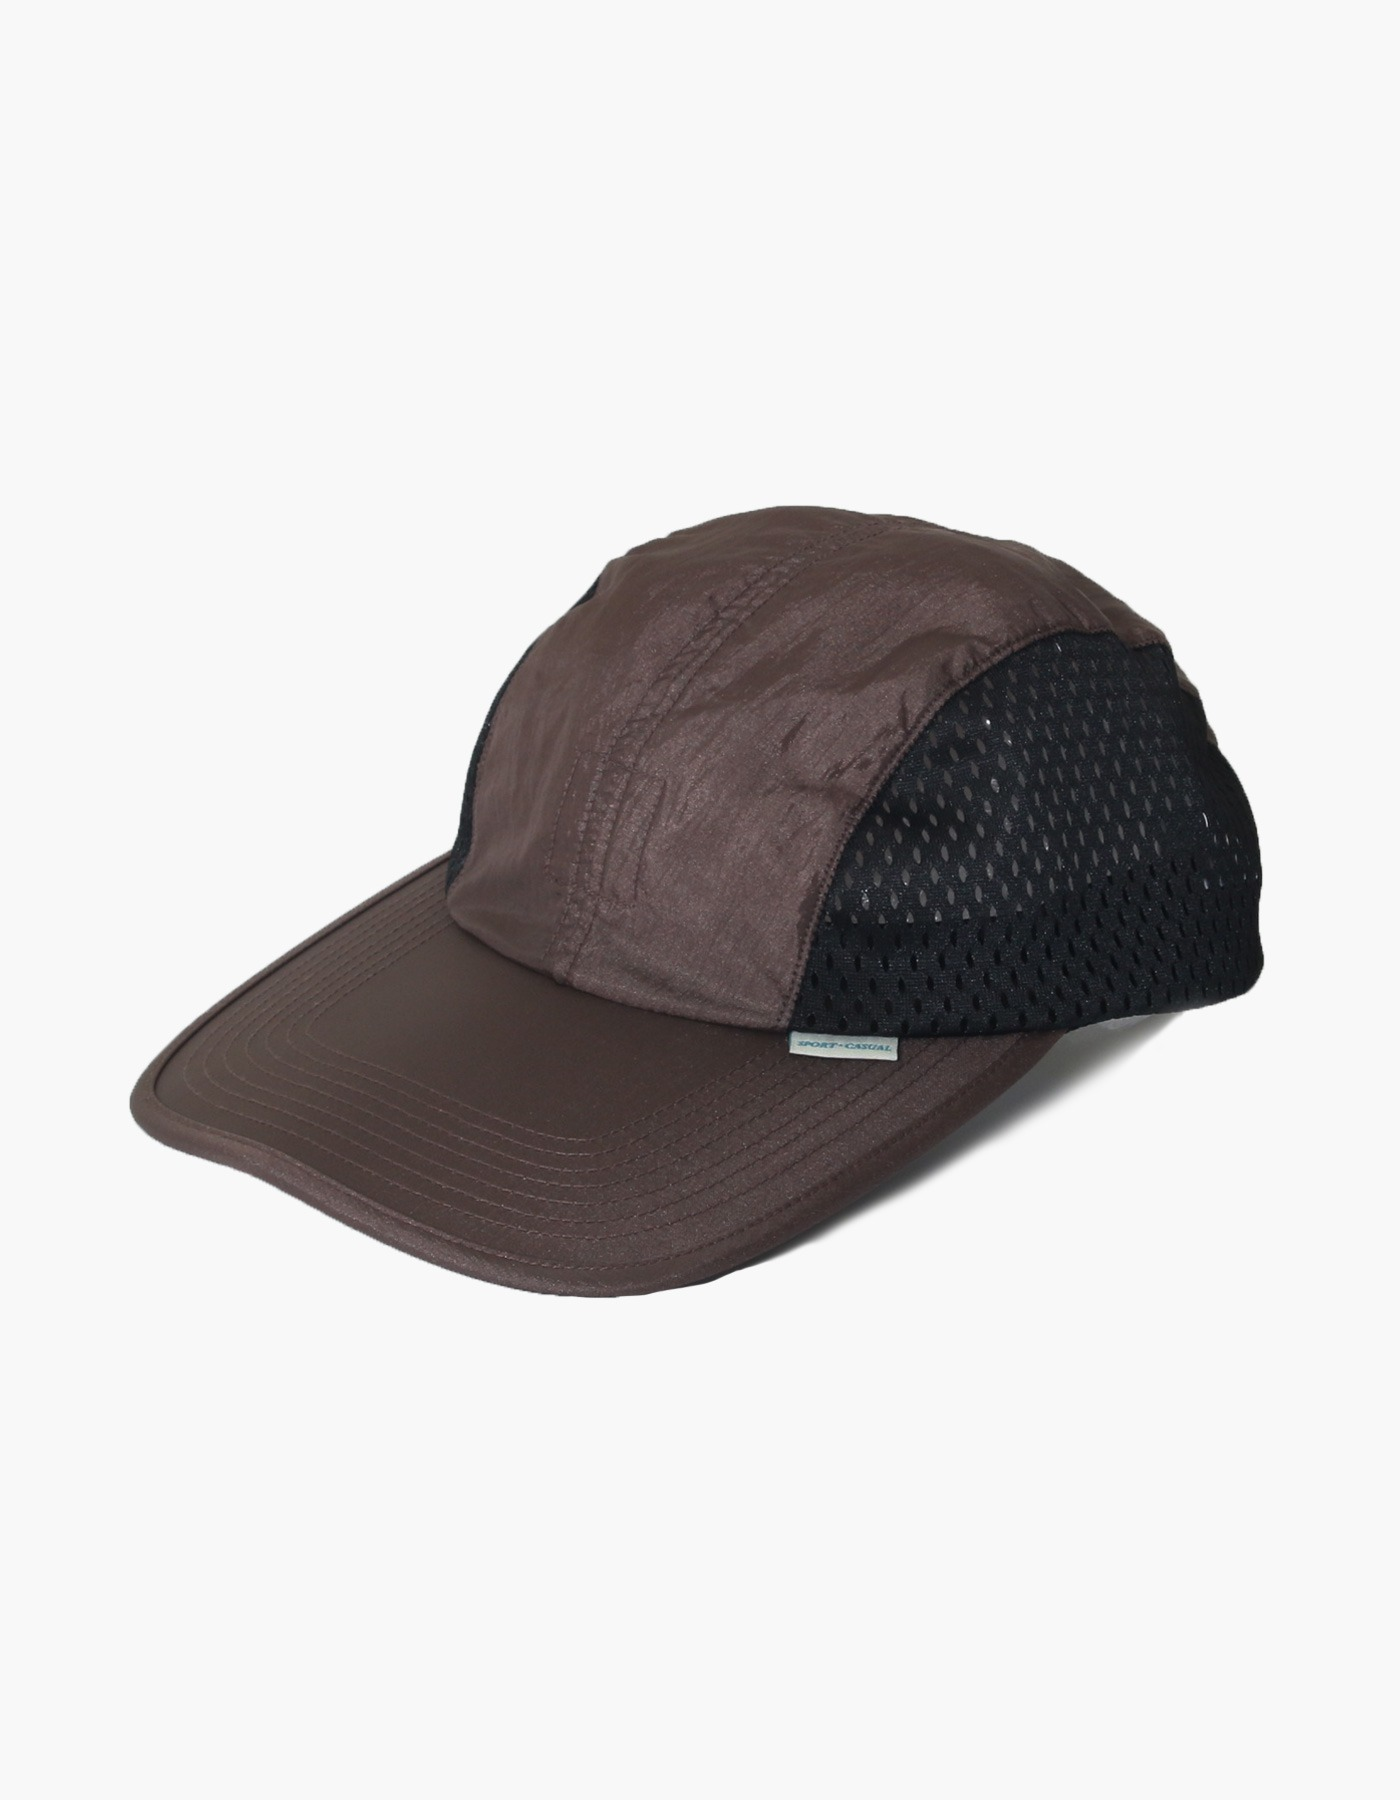 NYLON DIAMOND WASHER MESH CAP / DARK BROWN